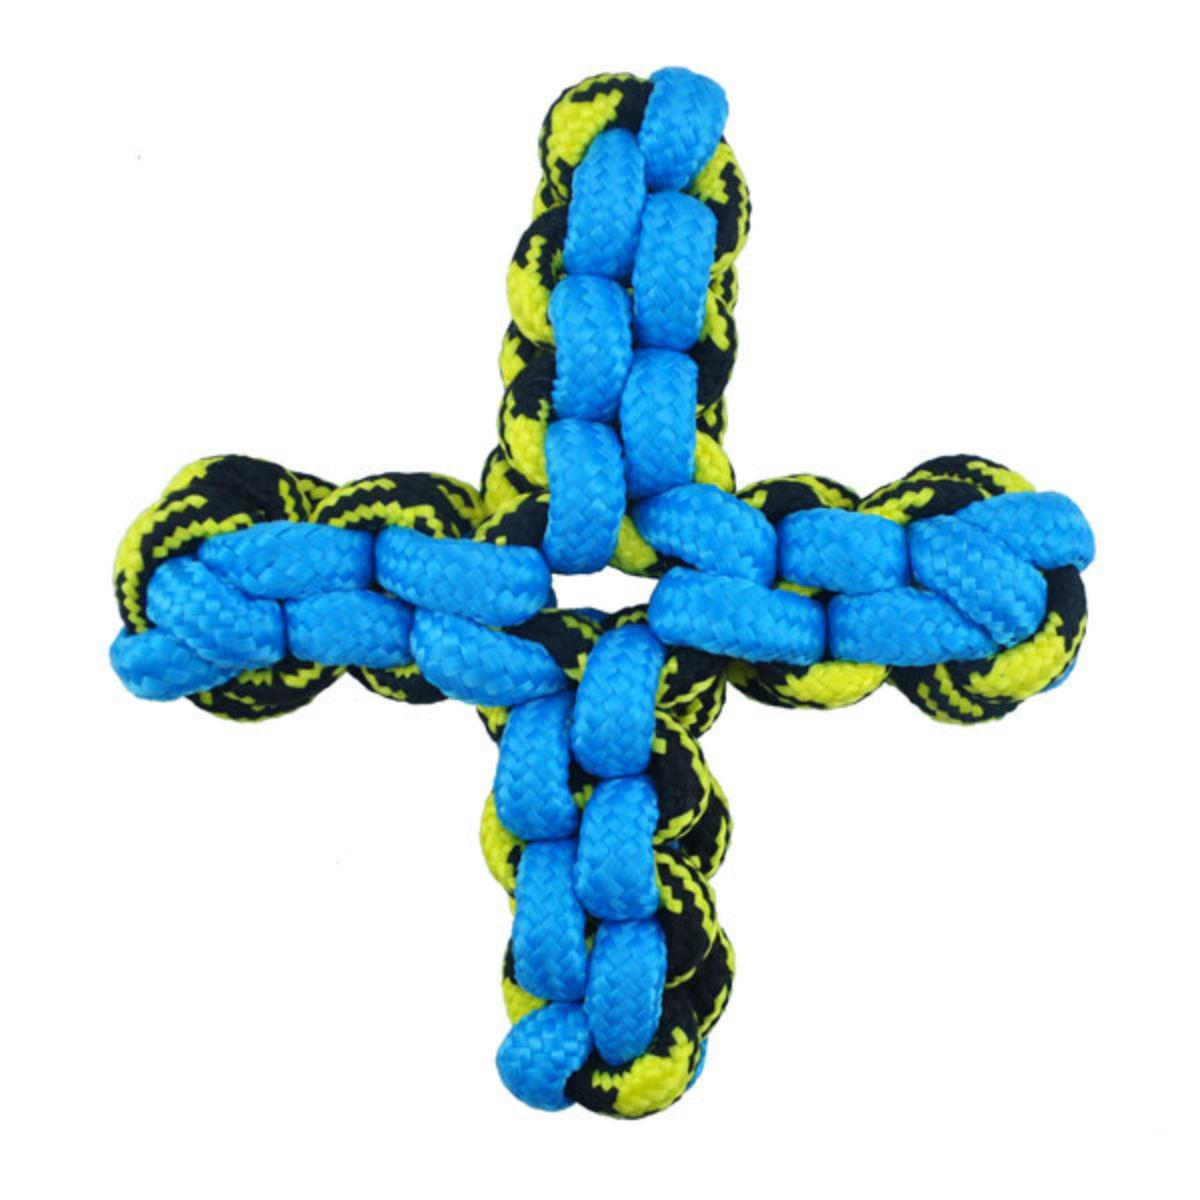 Pet Park Blvd Paracord Rope Twisted Quad X Dog Toy - Blue